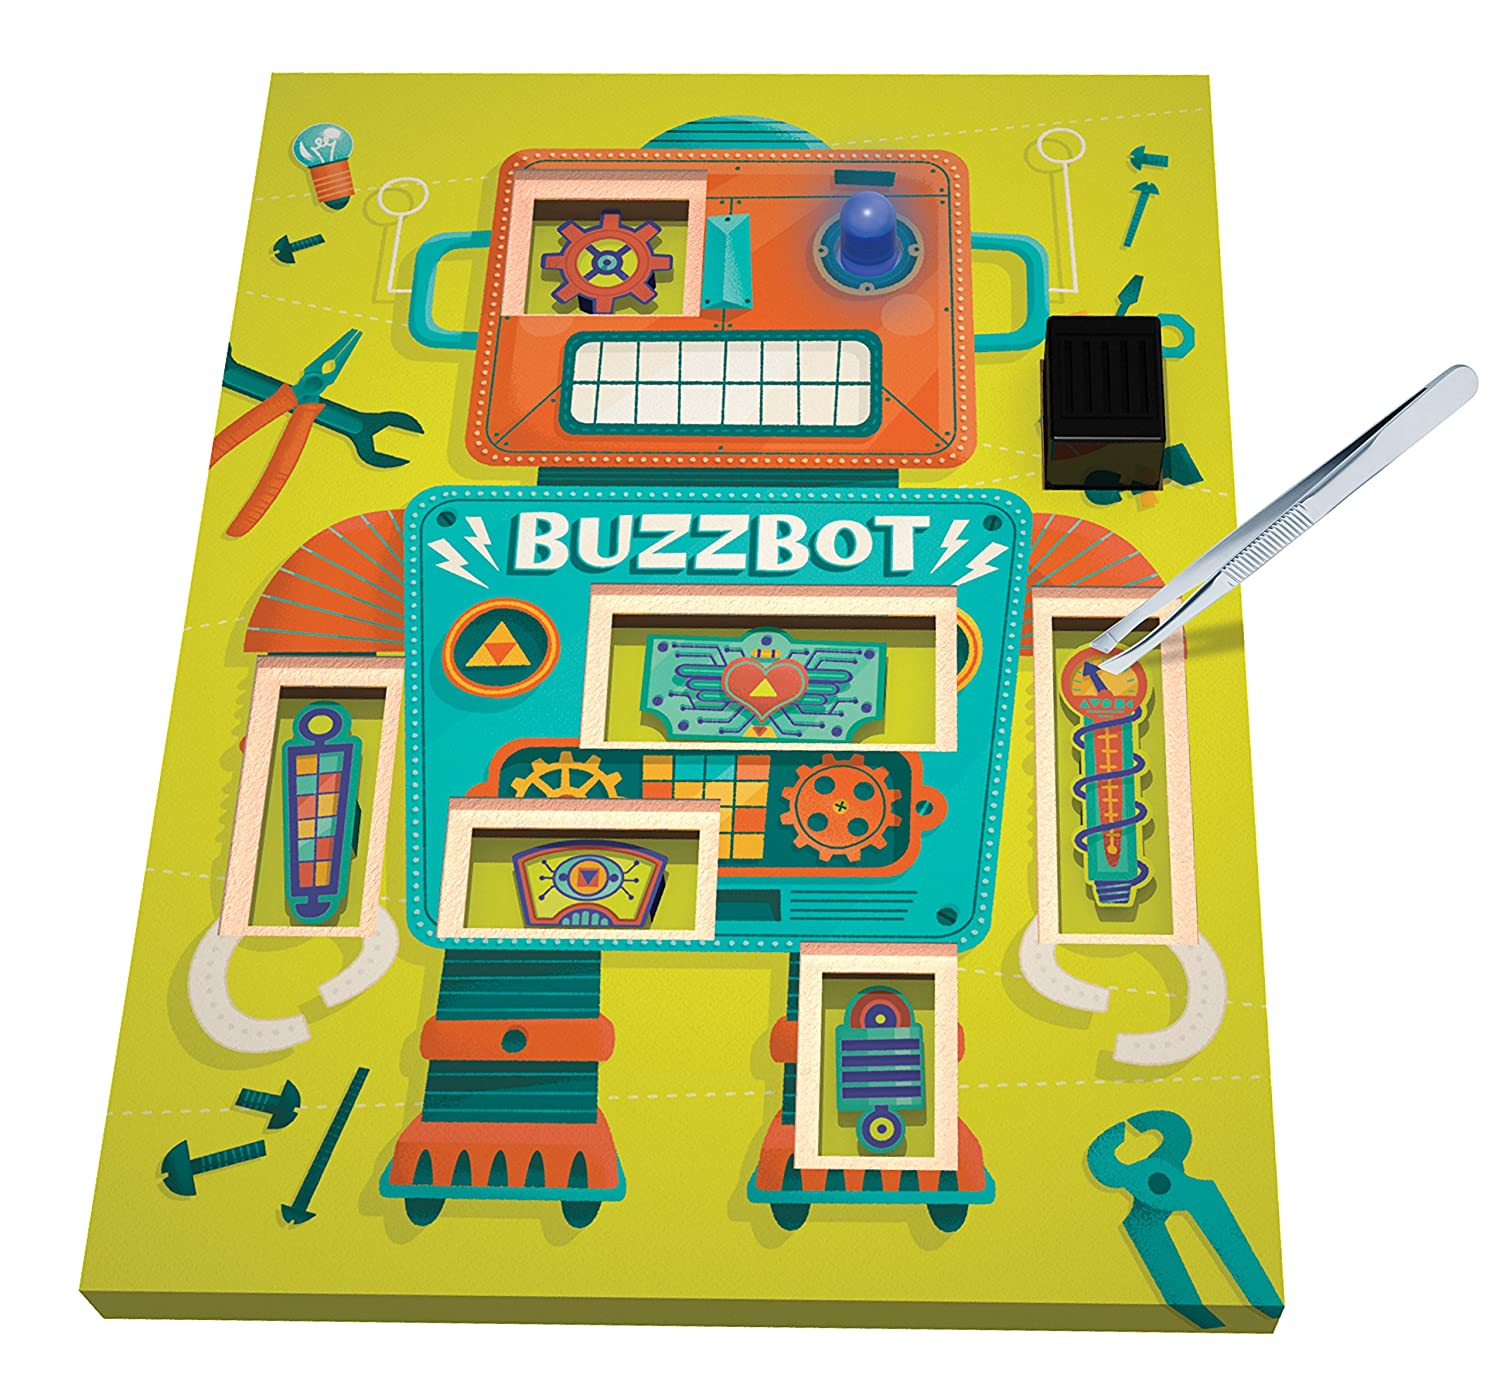 Klutz Maker Lab Circuit Kit Toys Games Buzzergameshowcircuitpng